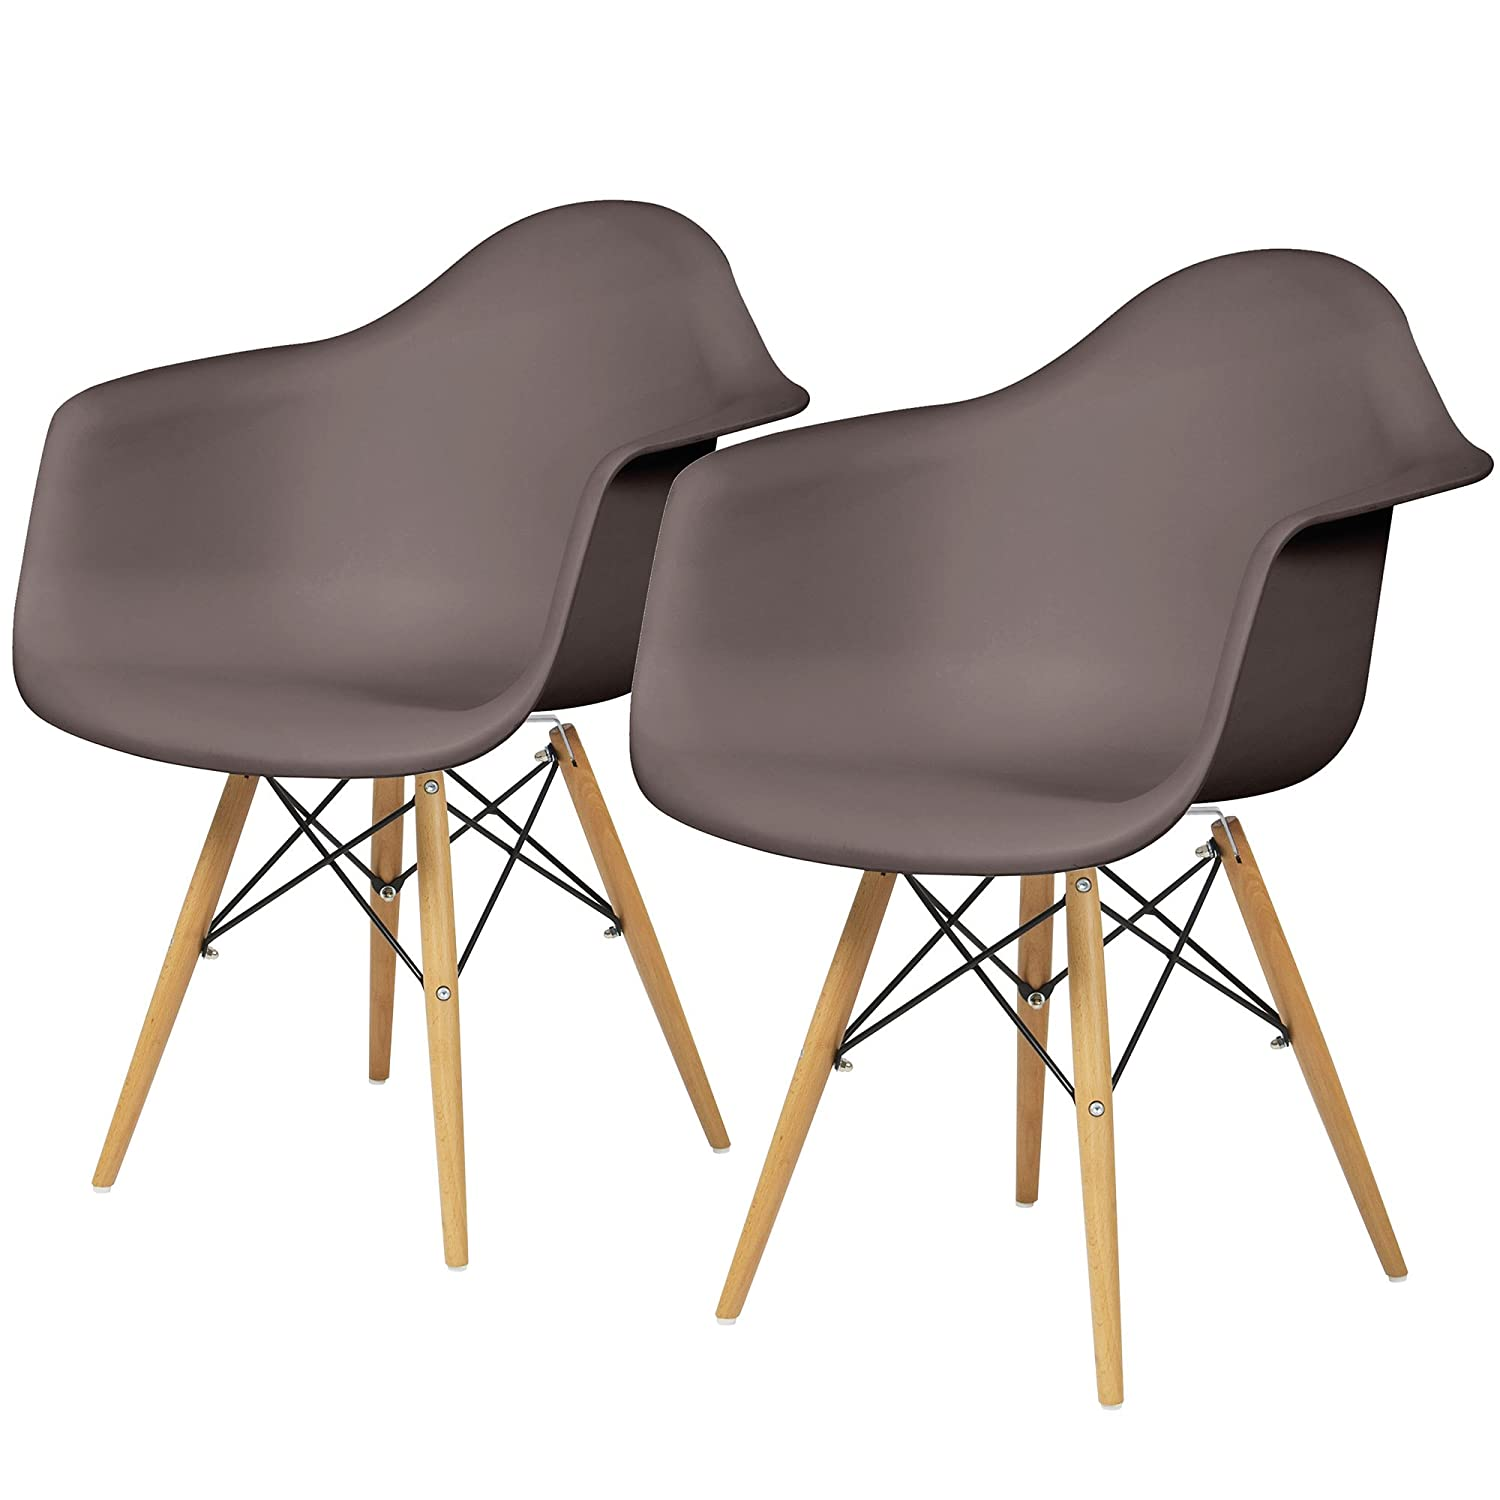 Amazon com best choice products set of 2 mid century modern eames style accent arm chairs for dining office living room taupe chairs